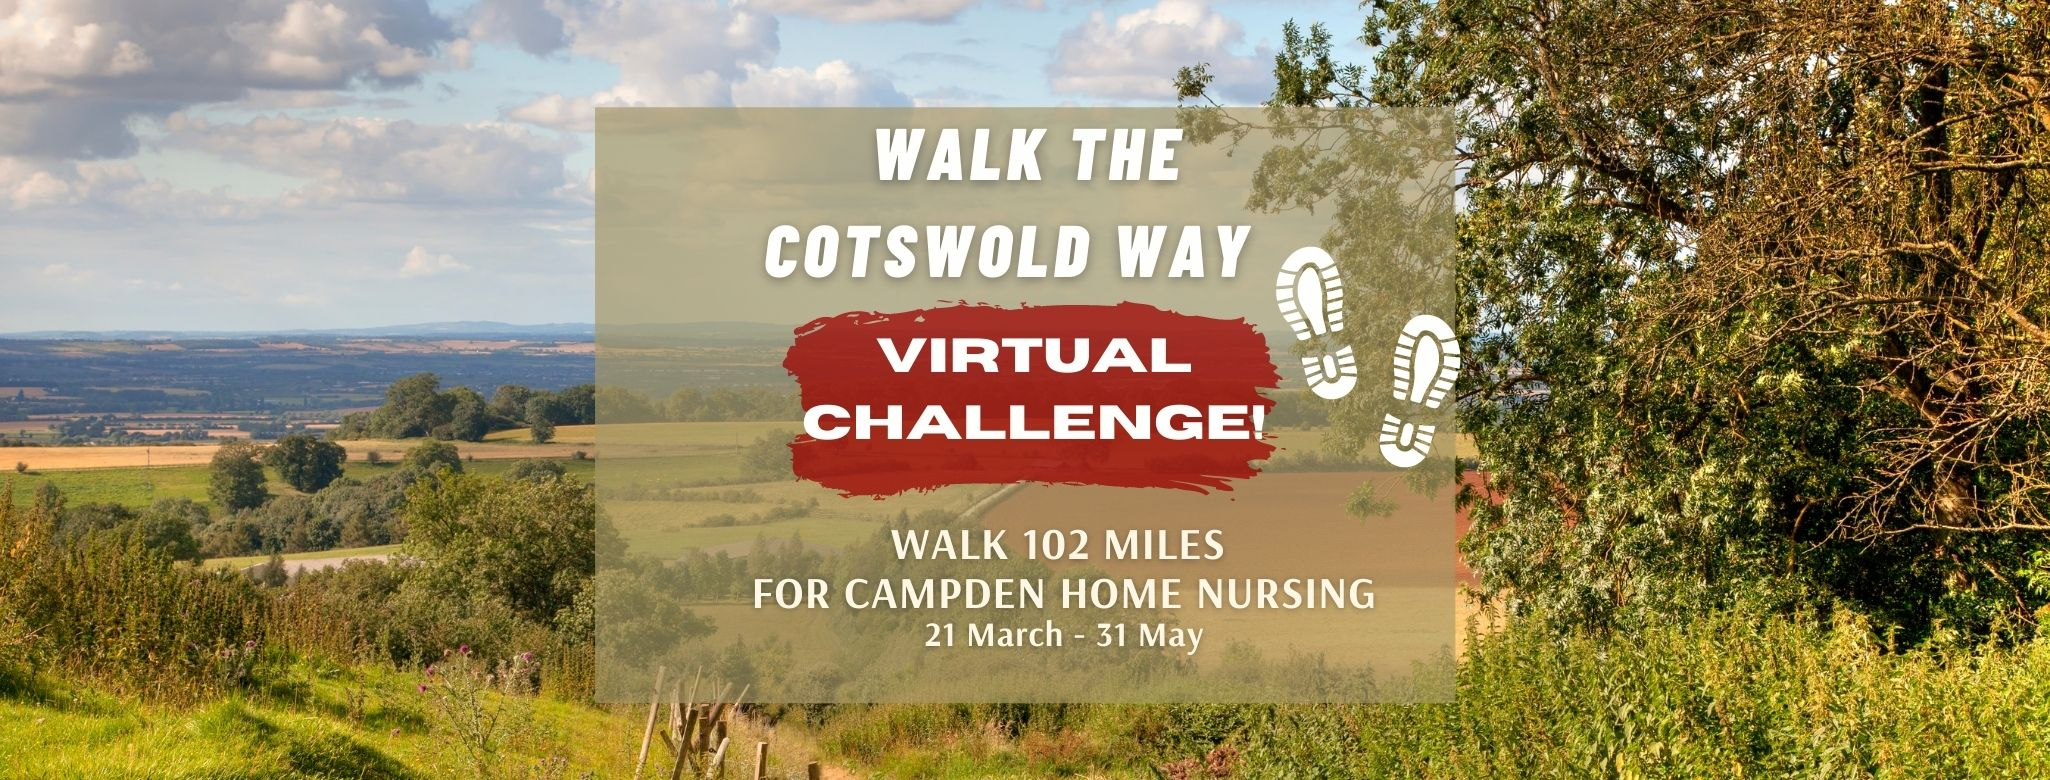 Campden Home Nursing's Virtual Walk of the Cotswold Way